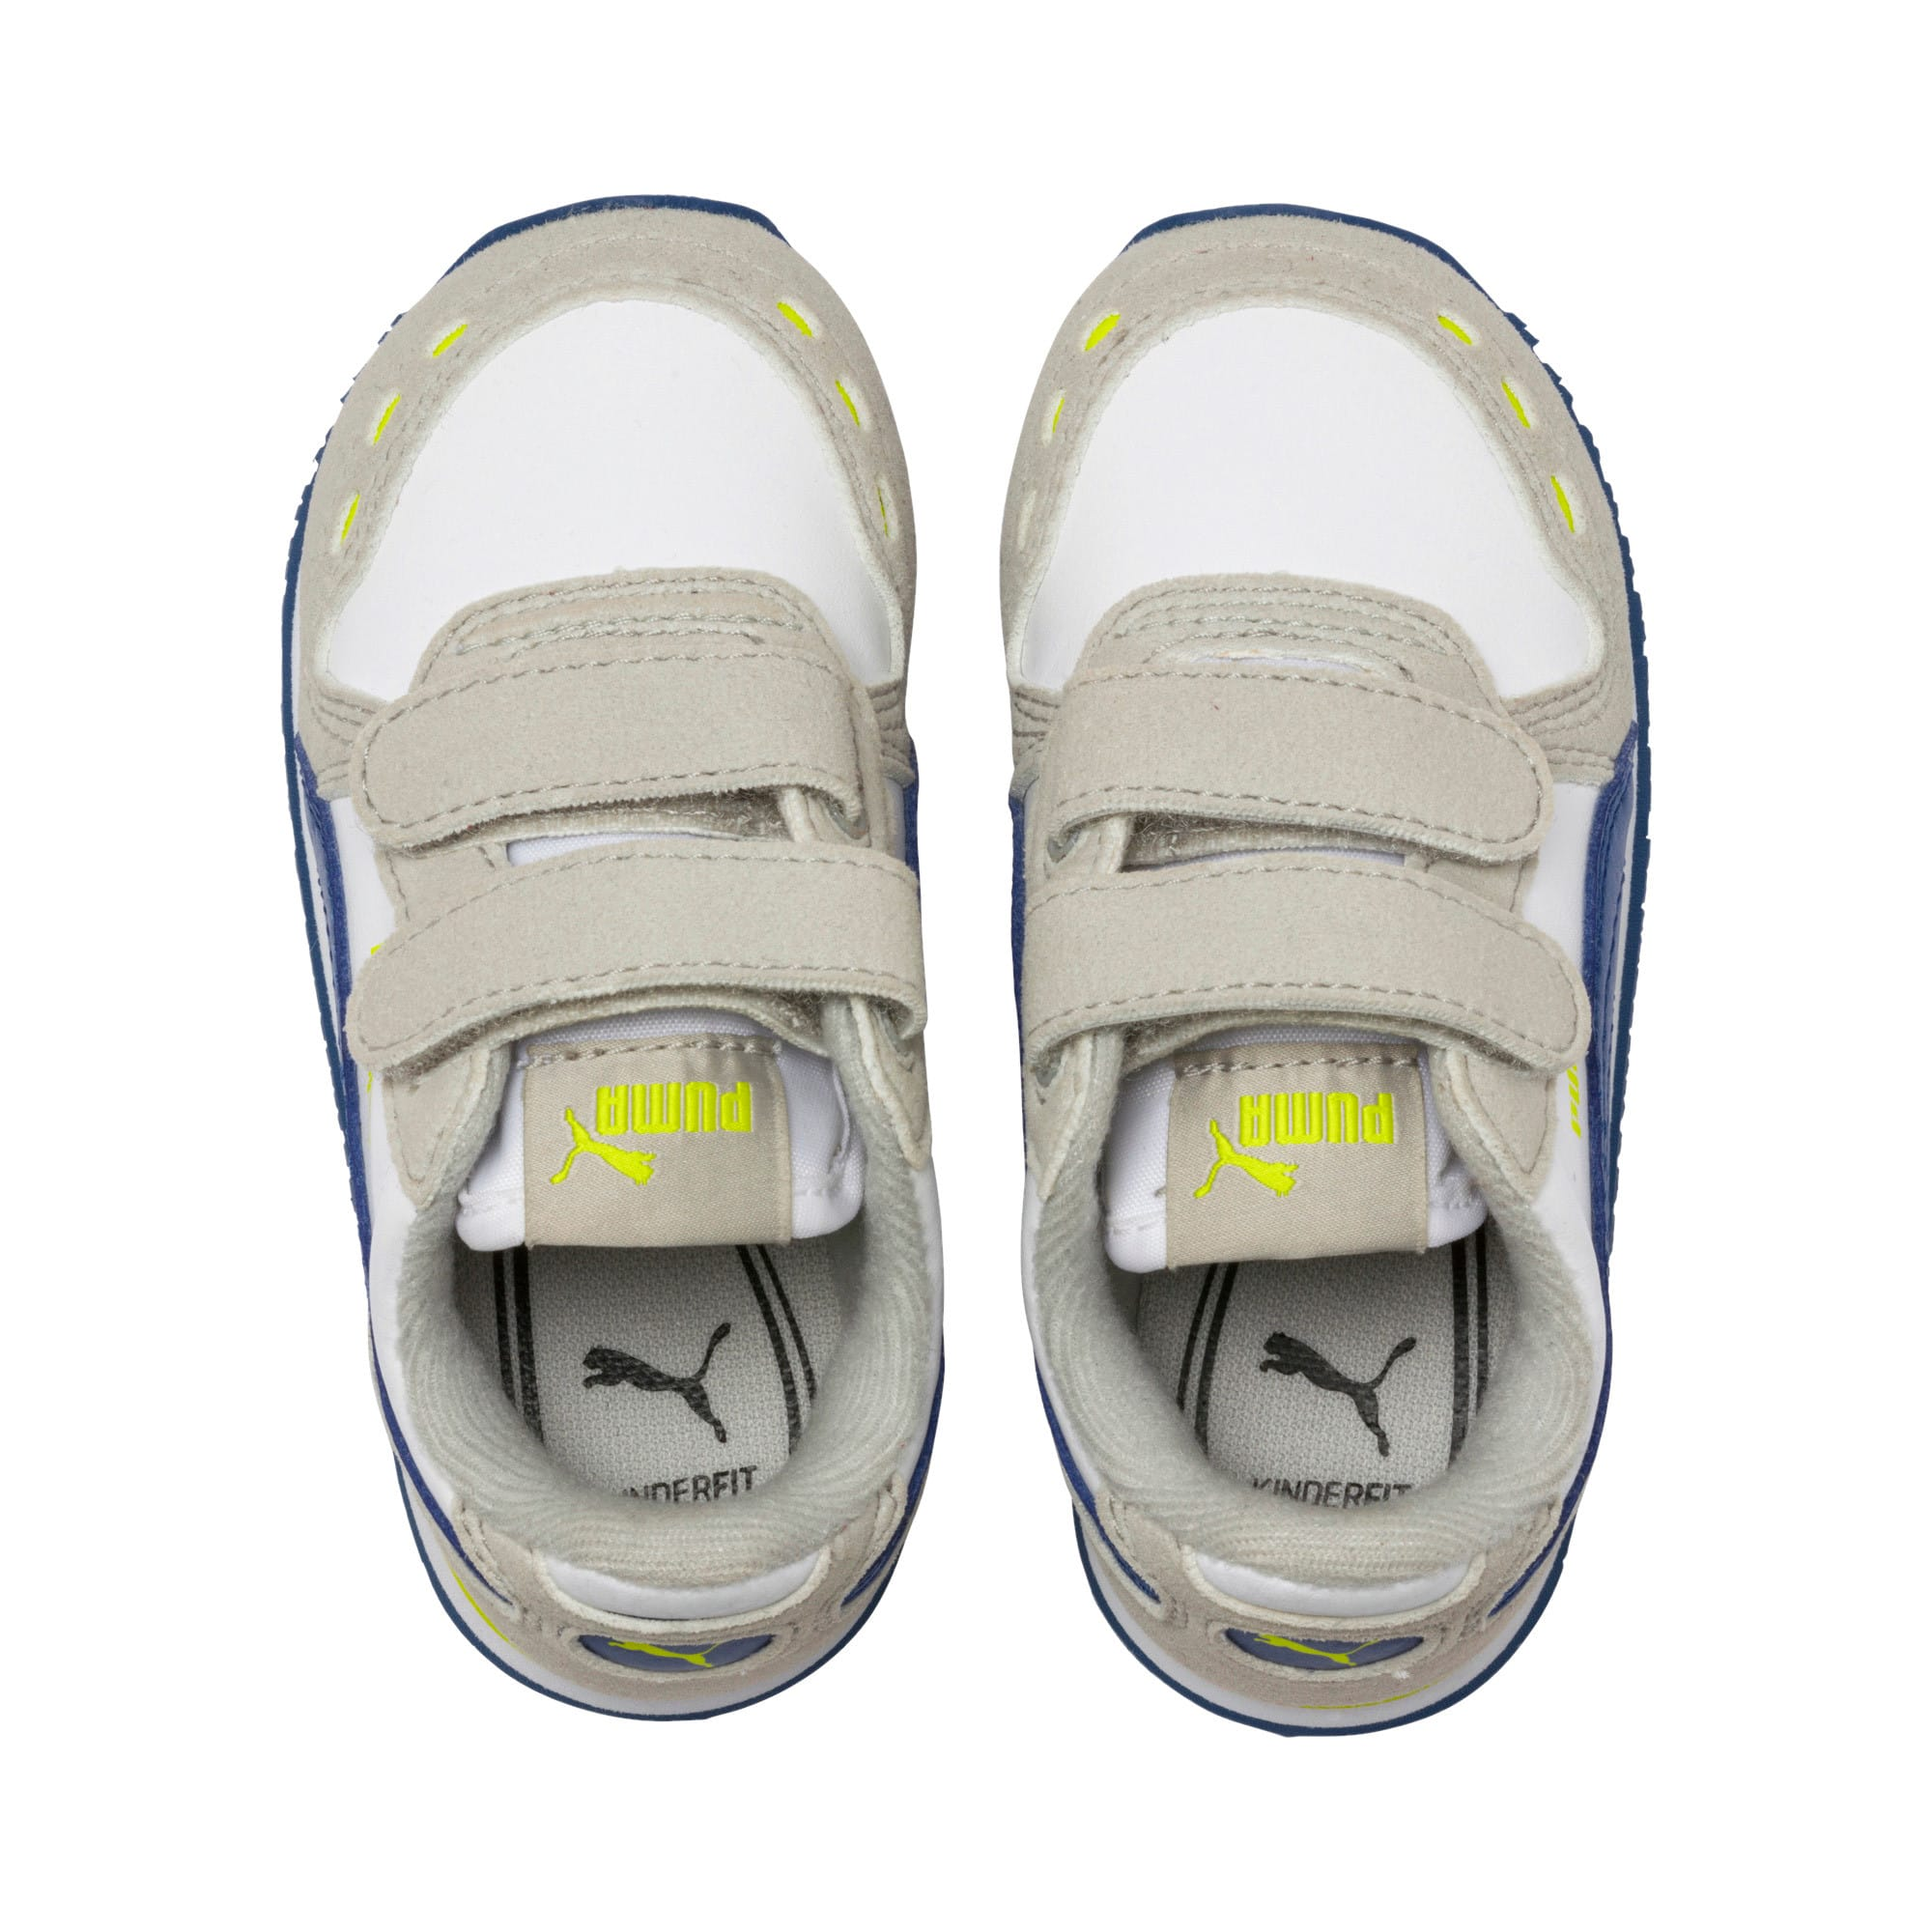 Thumbnail 6 of Cabana Racer SL Toddler Shoes, Puma White-Galaxy Blue, medium